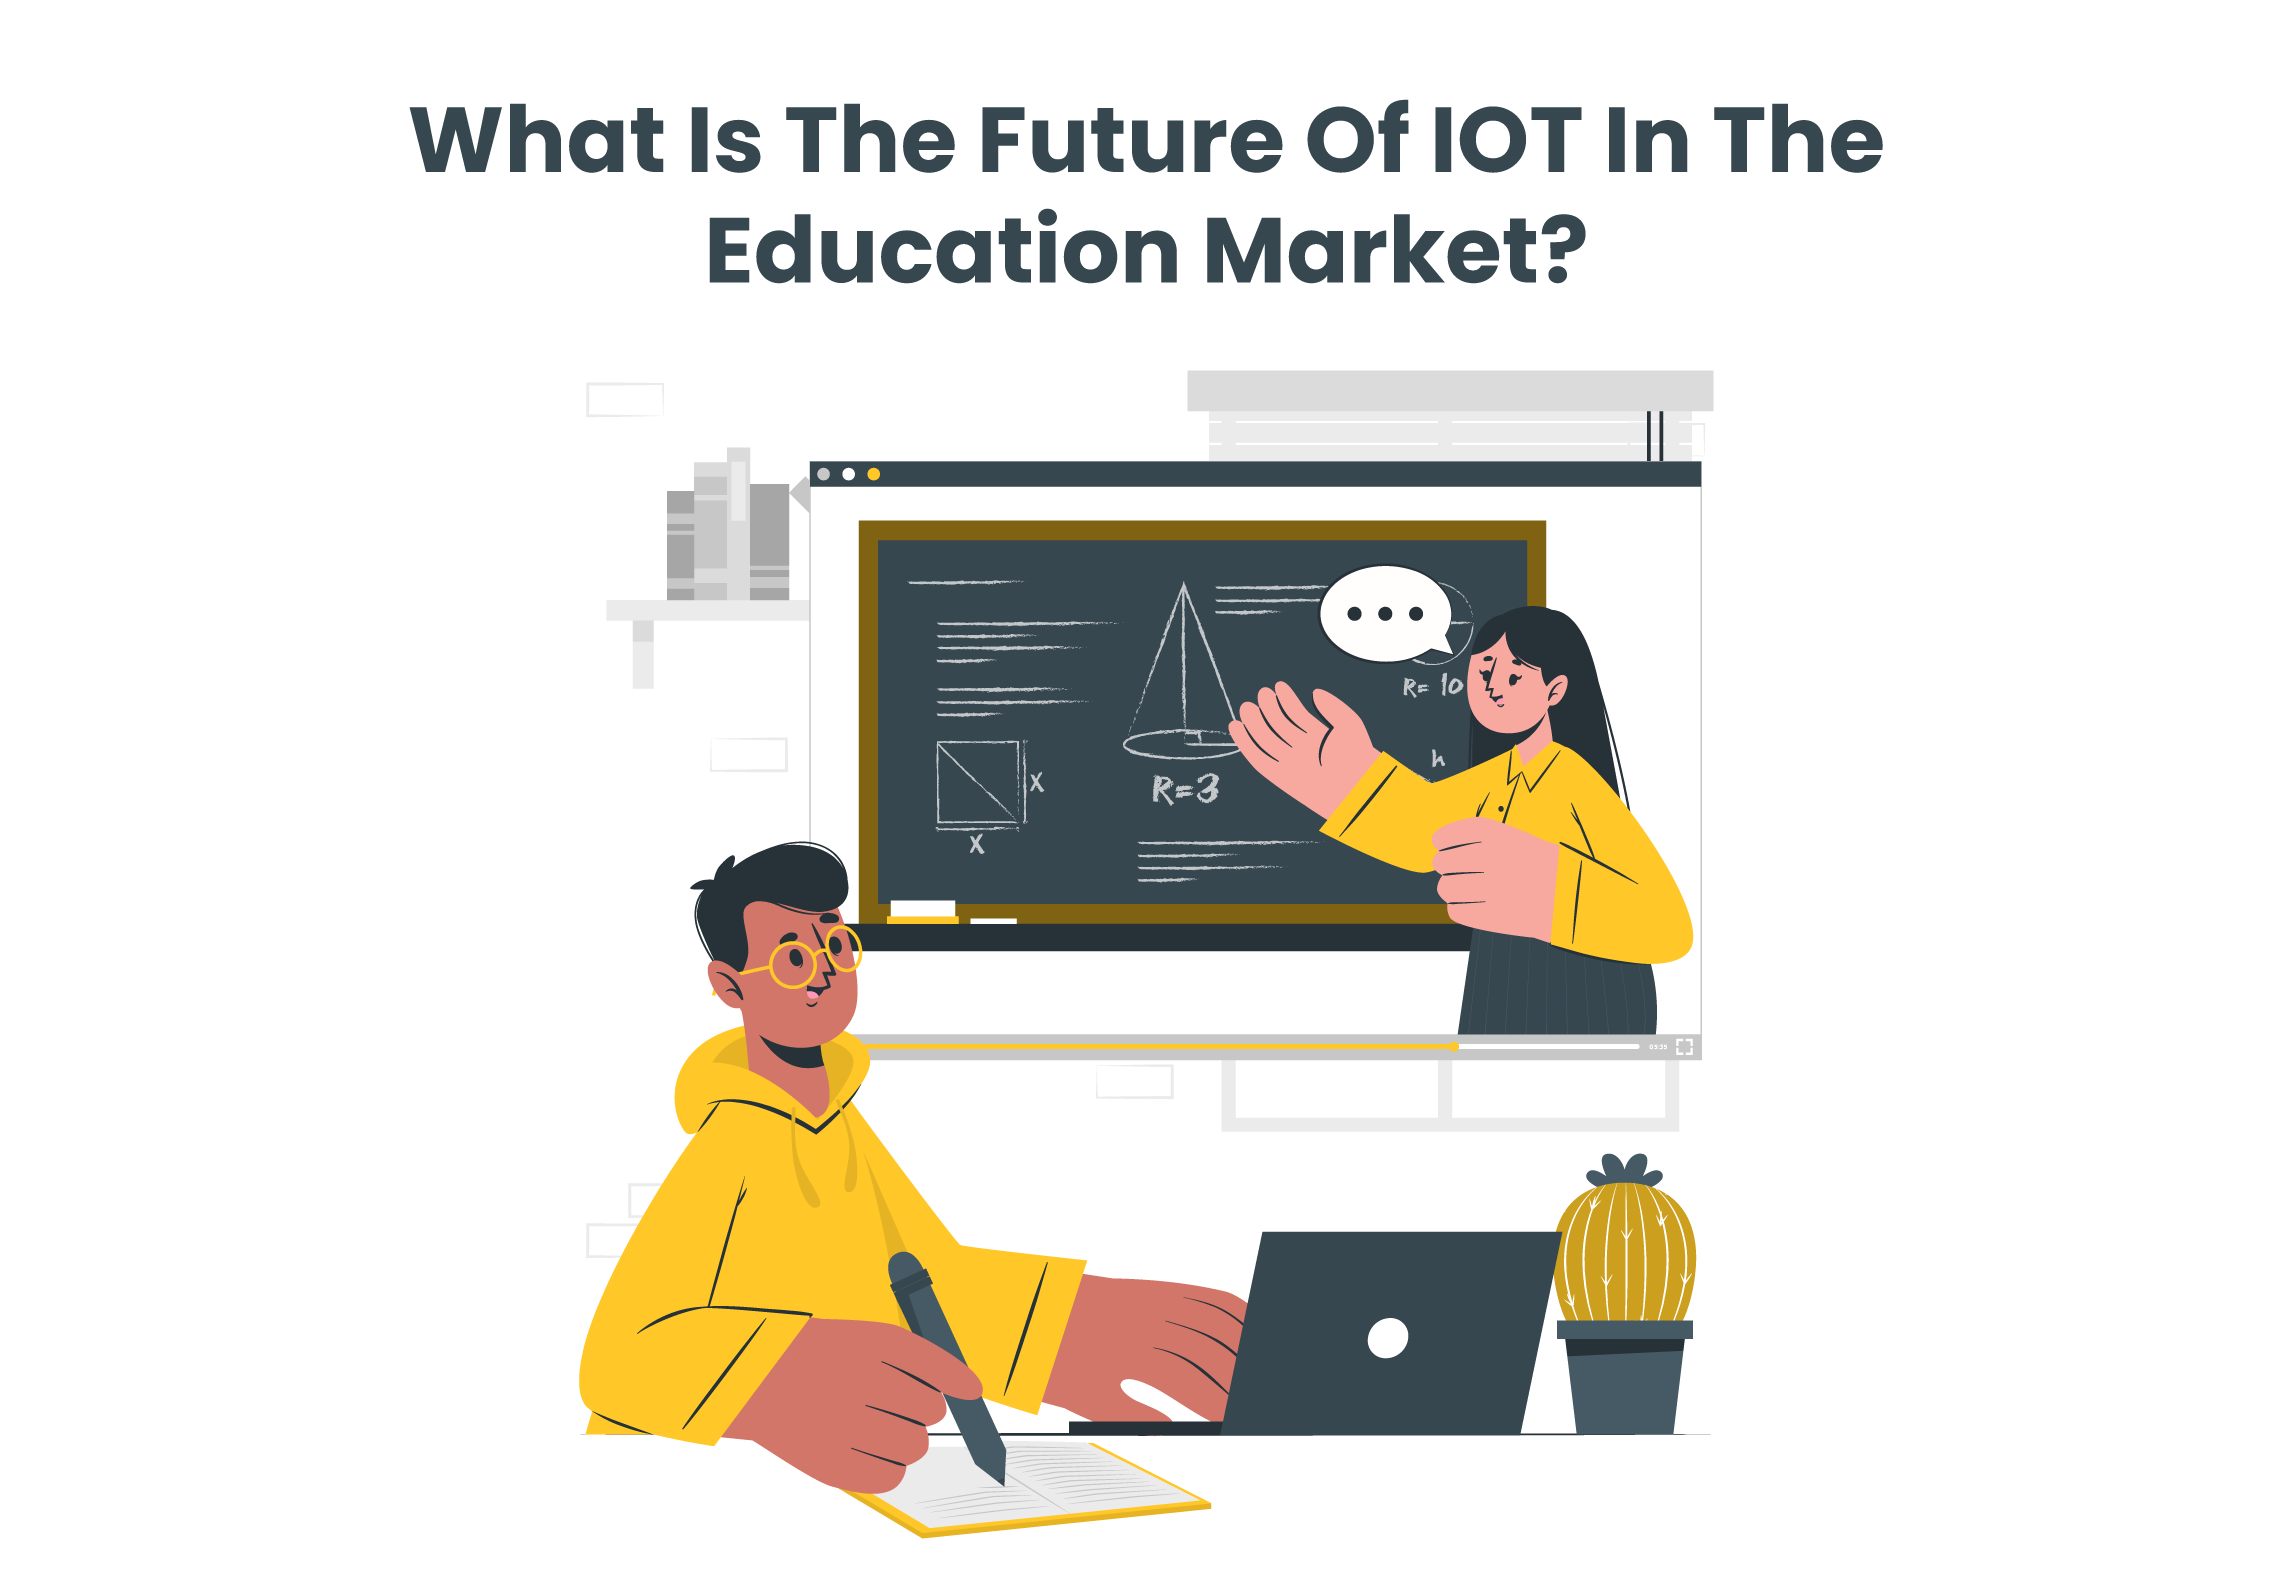 What Is The Future Of IoT In The Education Market?